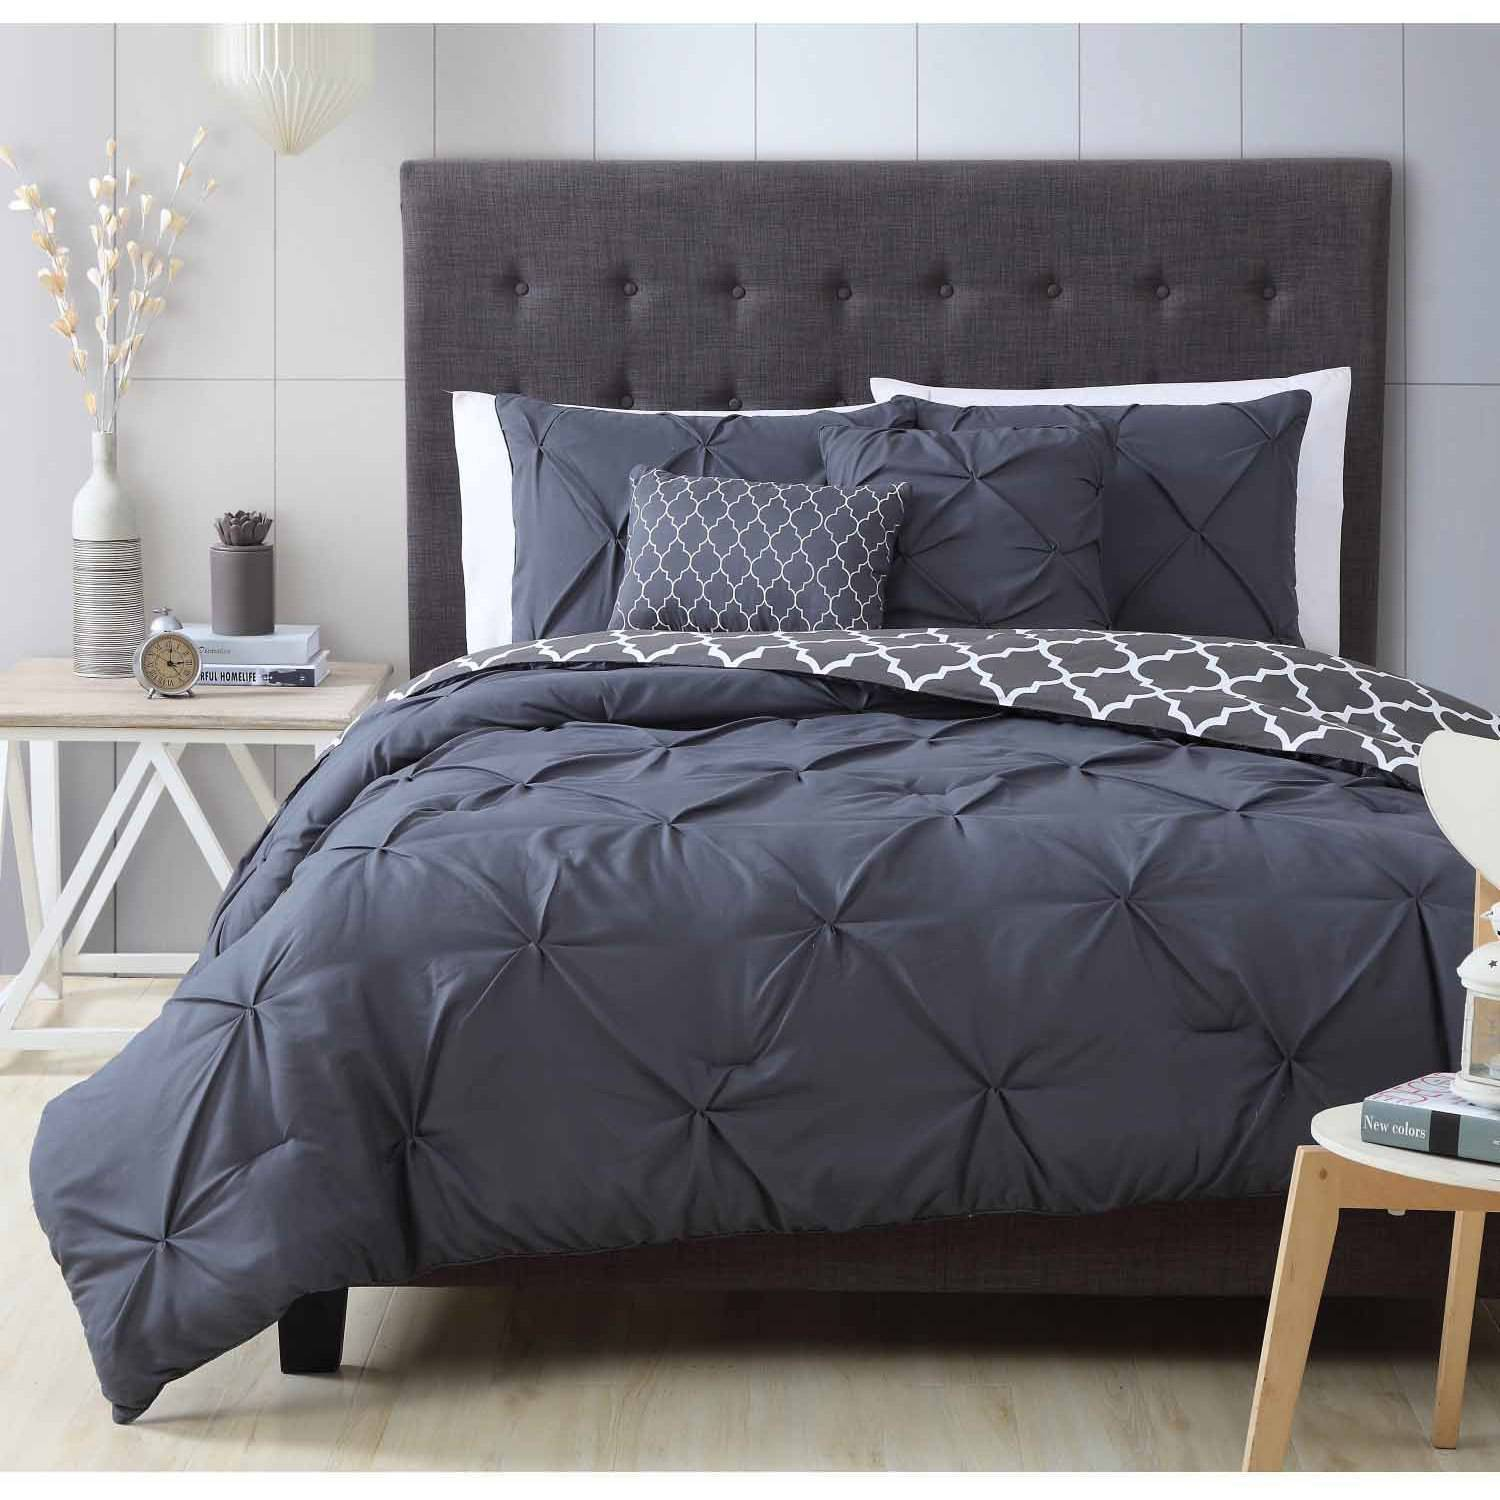 Madrid 5 piece bedding comforter set walmart com